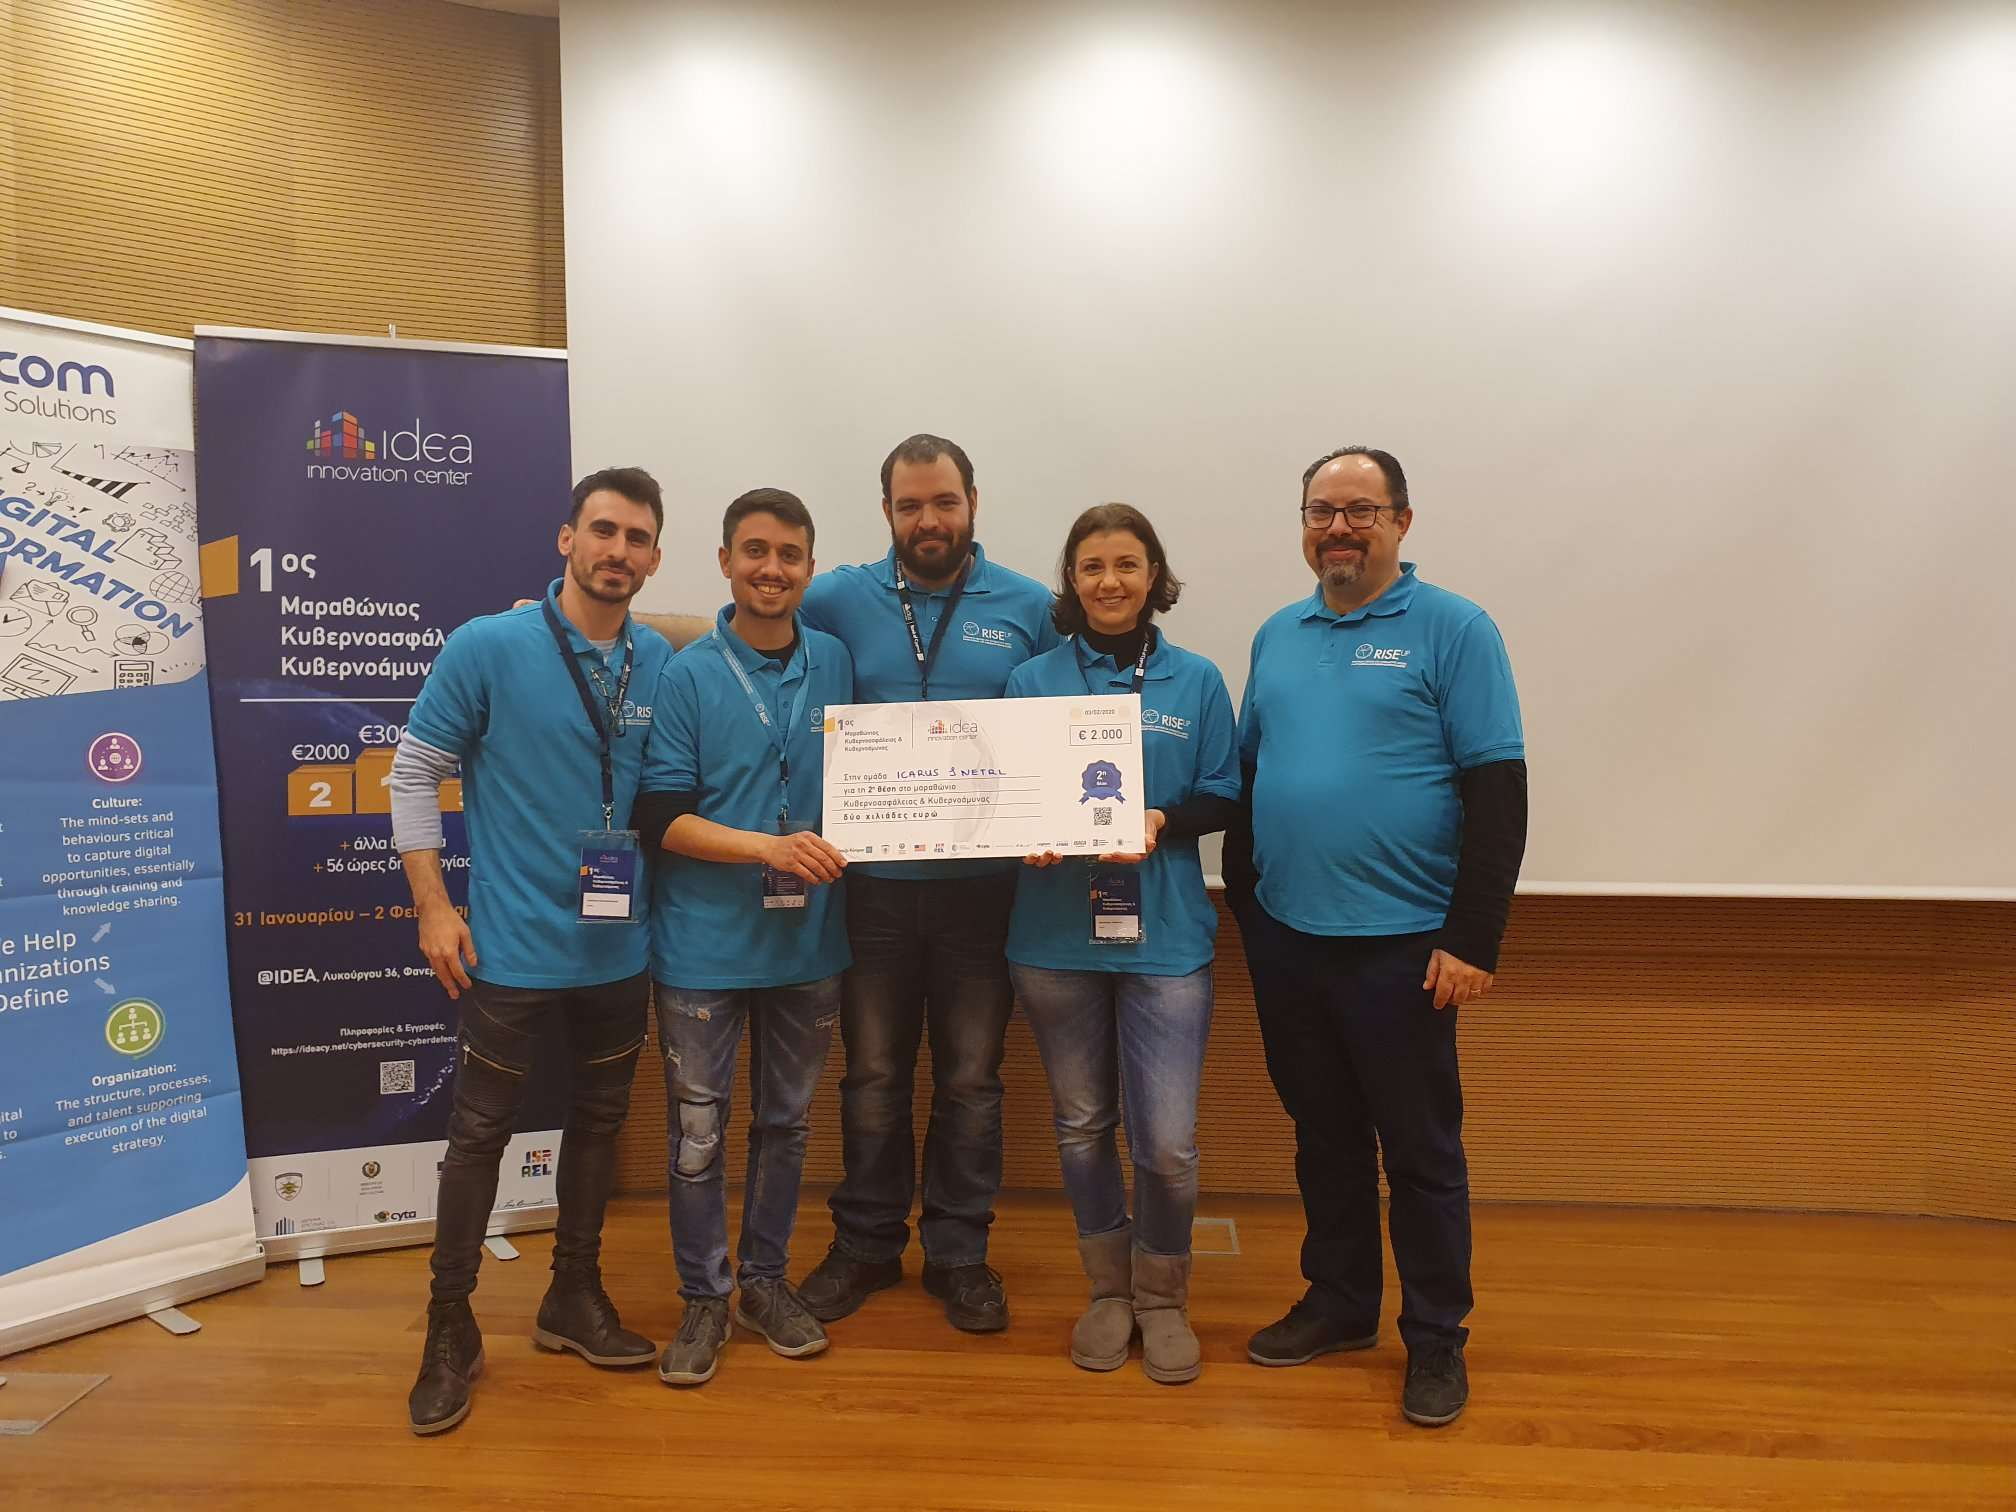 2nd Prize in the 1st Cybersecurity Cyberdefence Hackathon for students and researchers from the Computer Science Department of the University of Cyprus